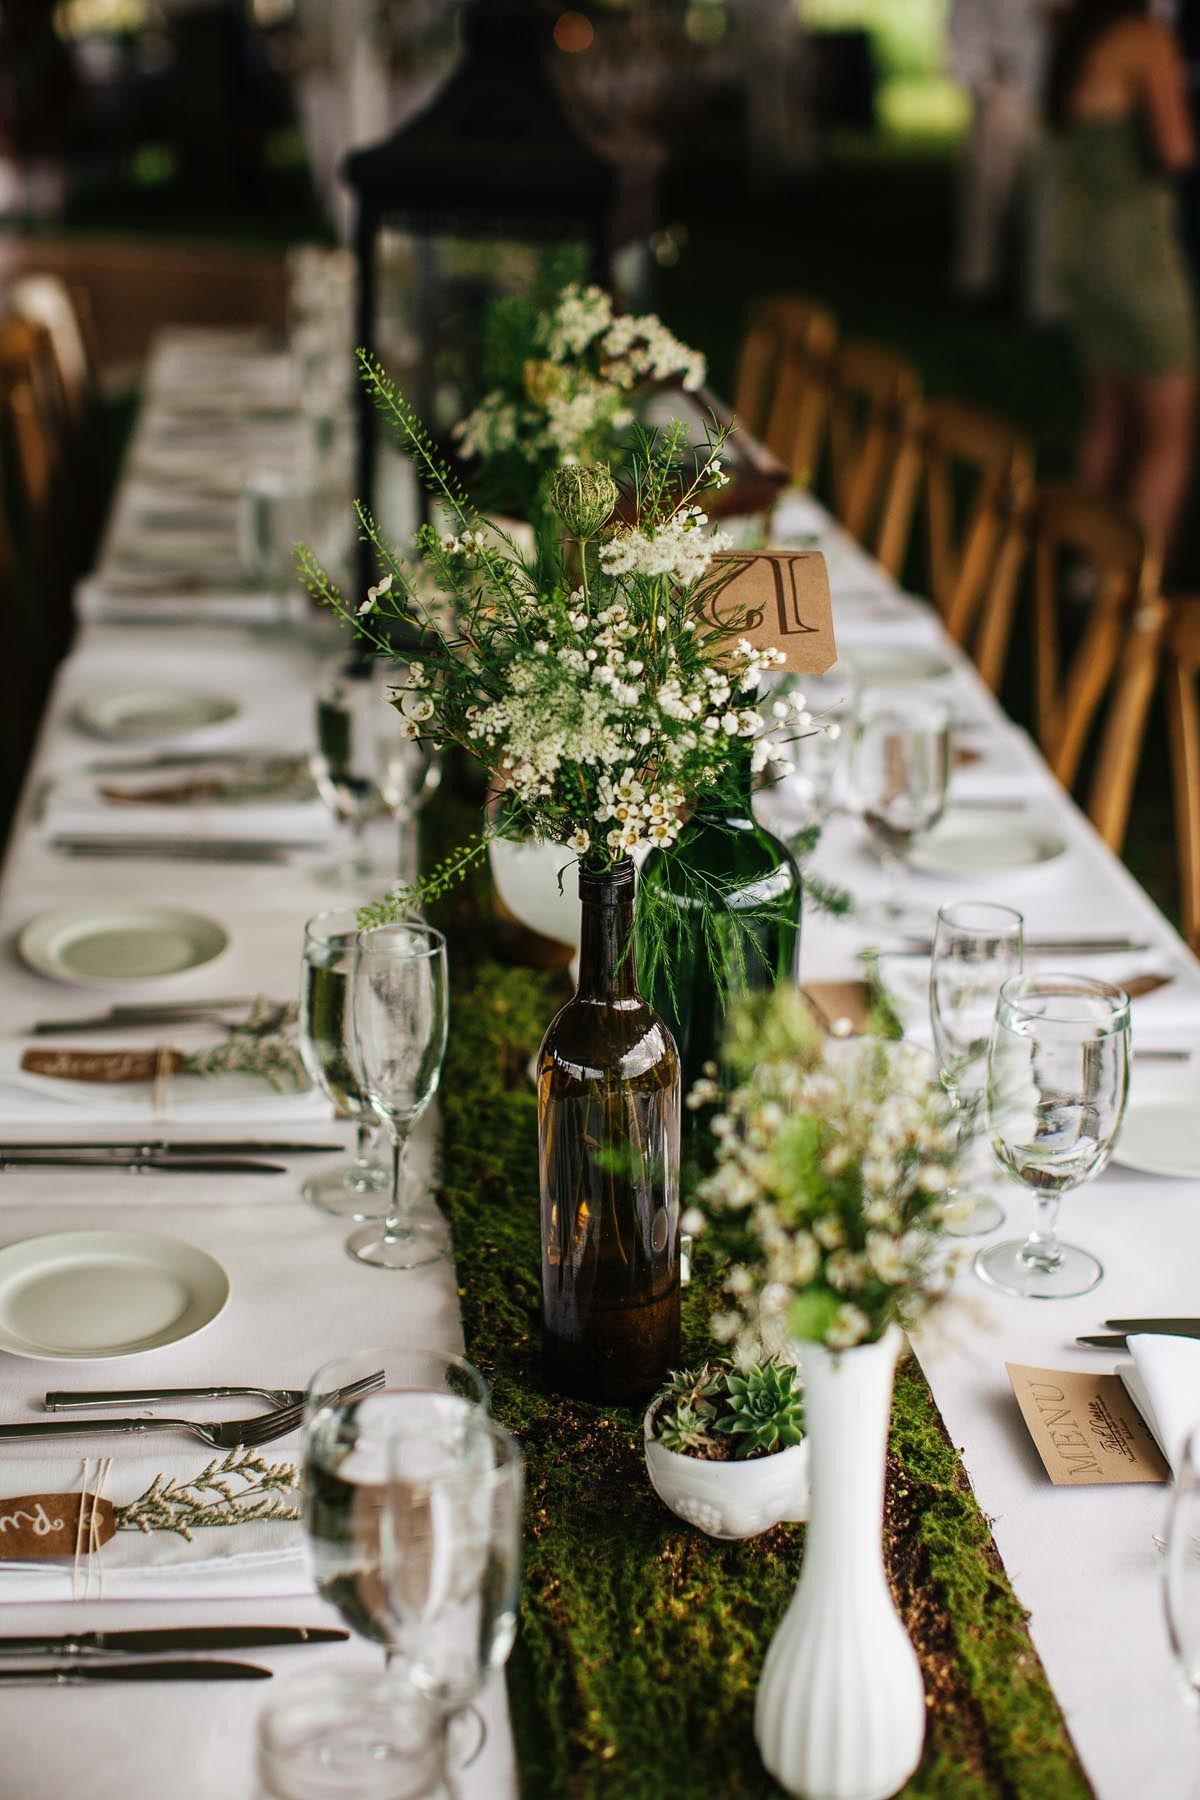 Photography: Fabrice Tranzer - www.fabricetranzer.com Read More: http://www.stylemepretty.com/2014/05/09/diy-hudson-valley-farm-wedding/